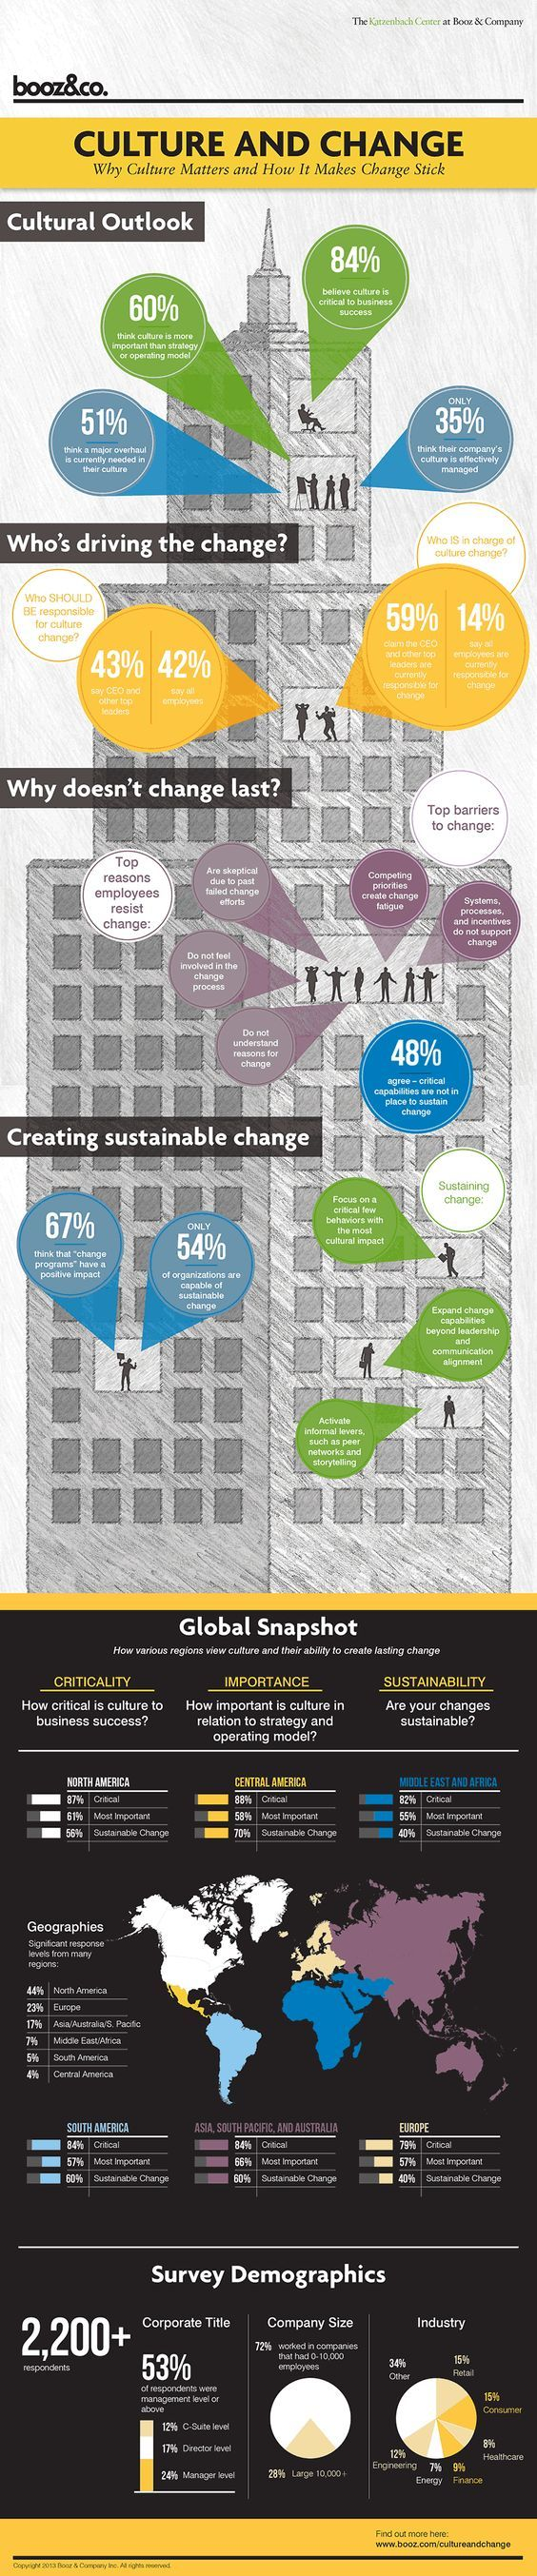 This infographic from @BoozCompany discusses organizational Culture and Change